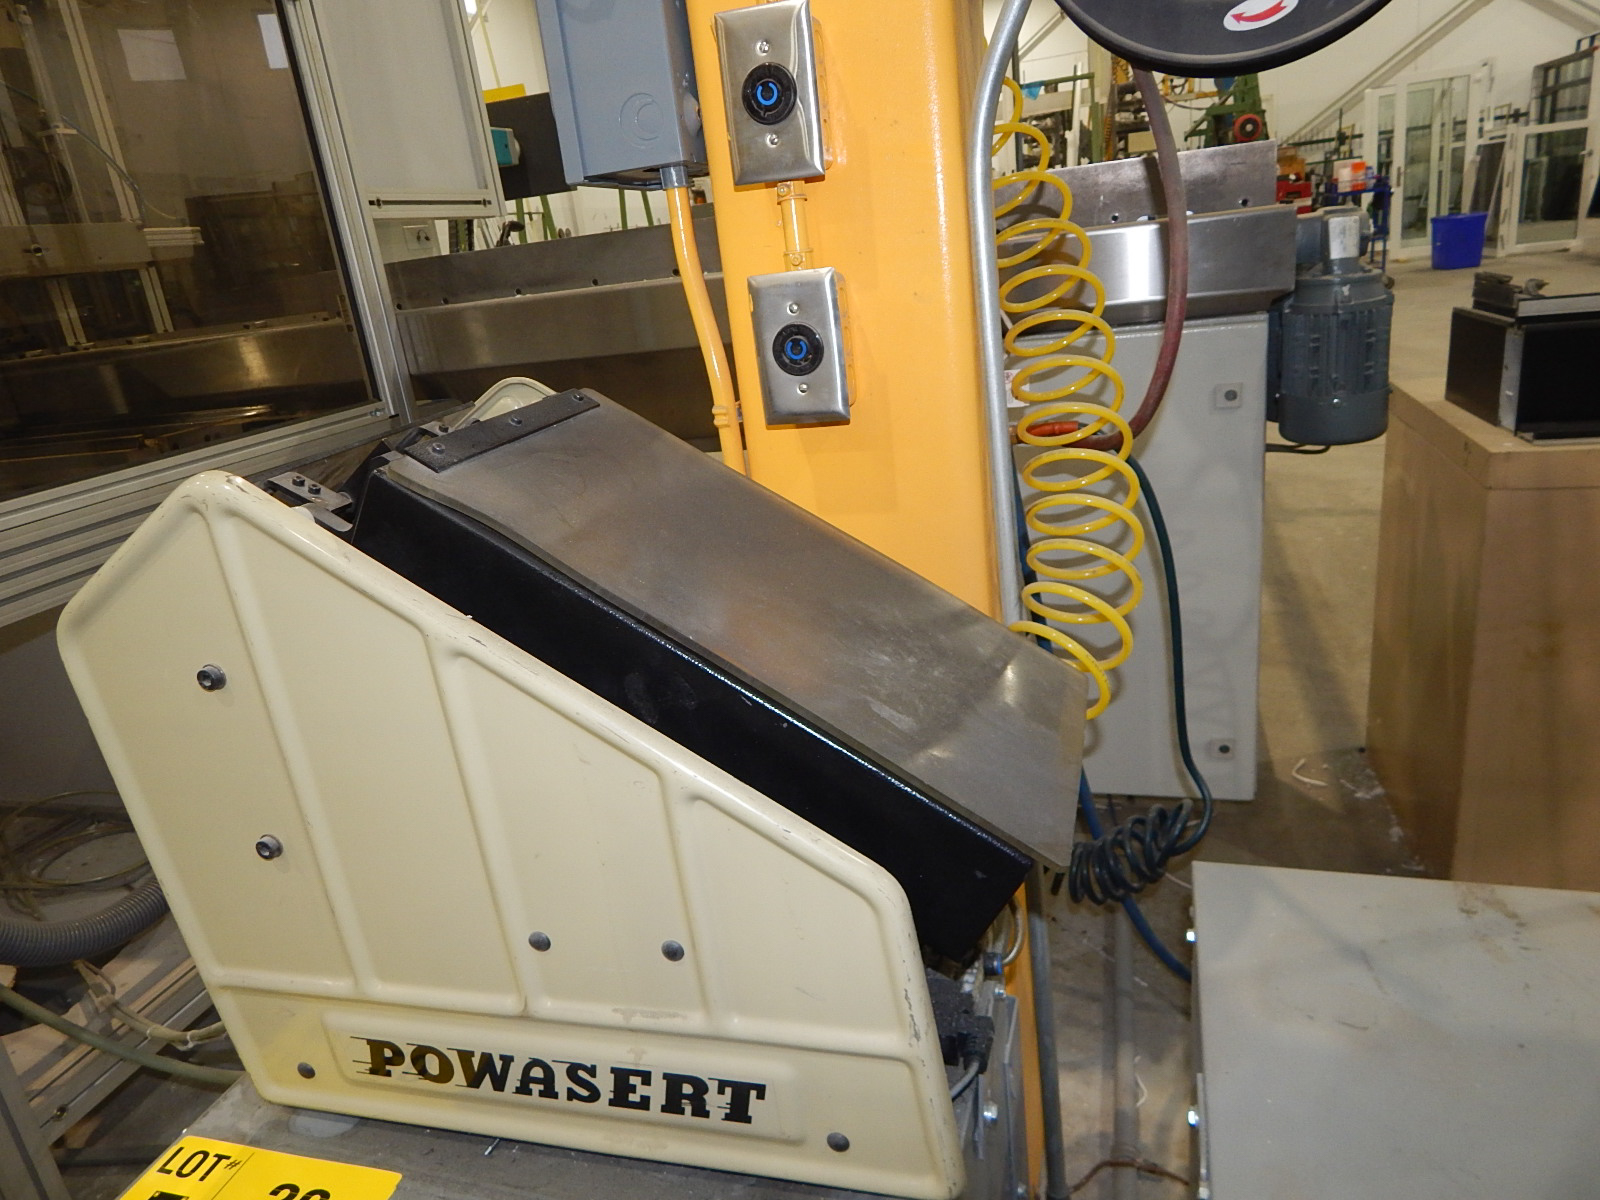 THORWESTERN (2008) PBZ-3 CNC PROFILE MACHINING CENTER WITH WINDOWS PC BASED AR010 TOUCH SCREEN CNC - Image 8 of 9